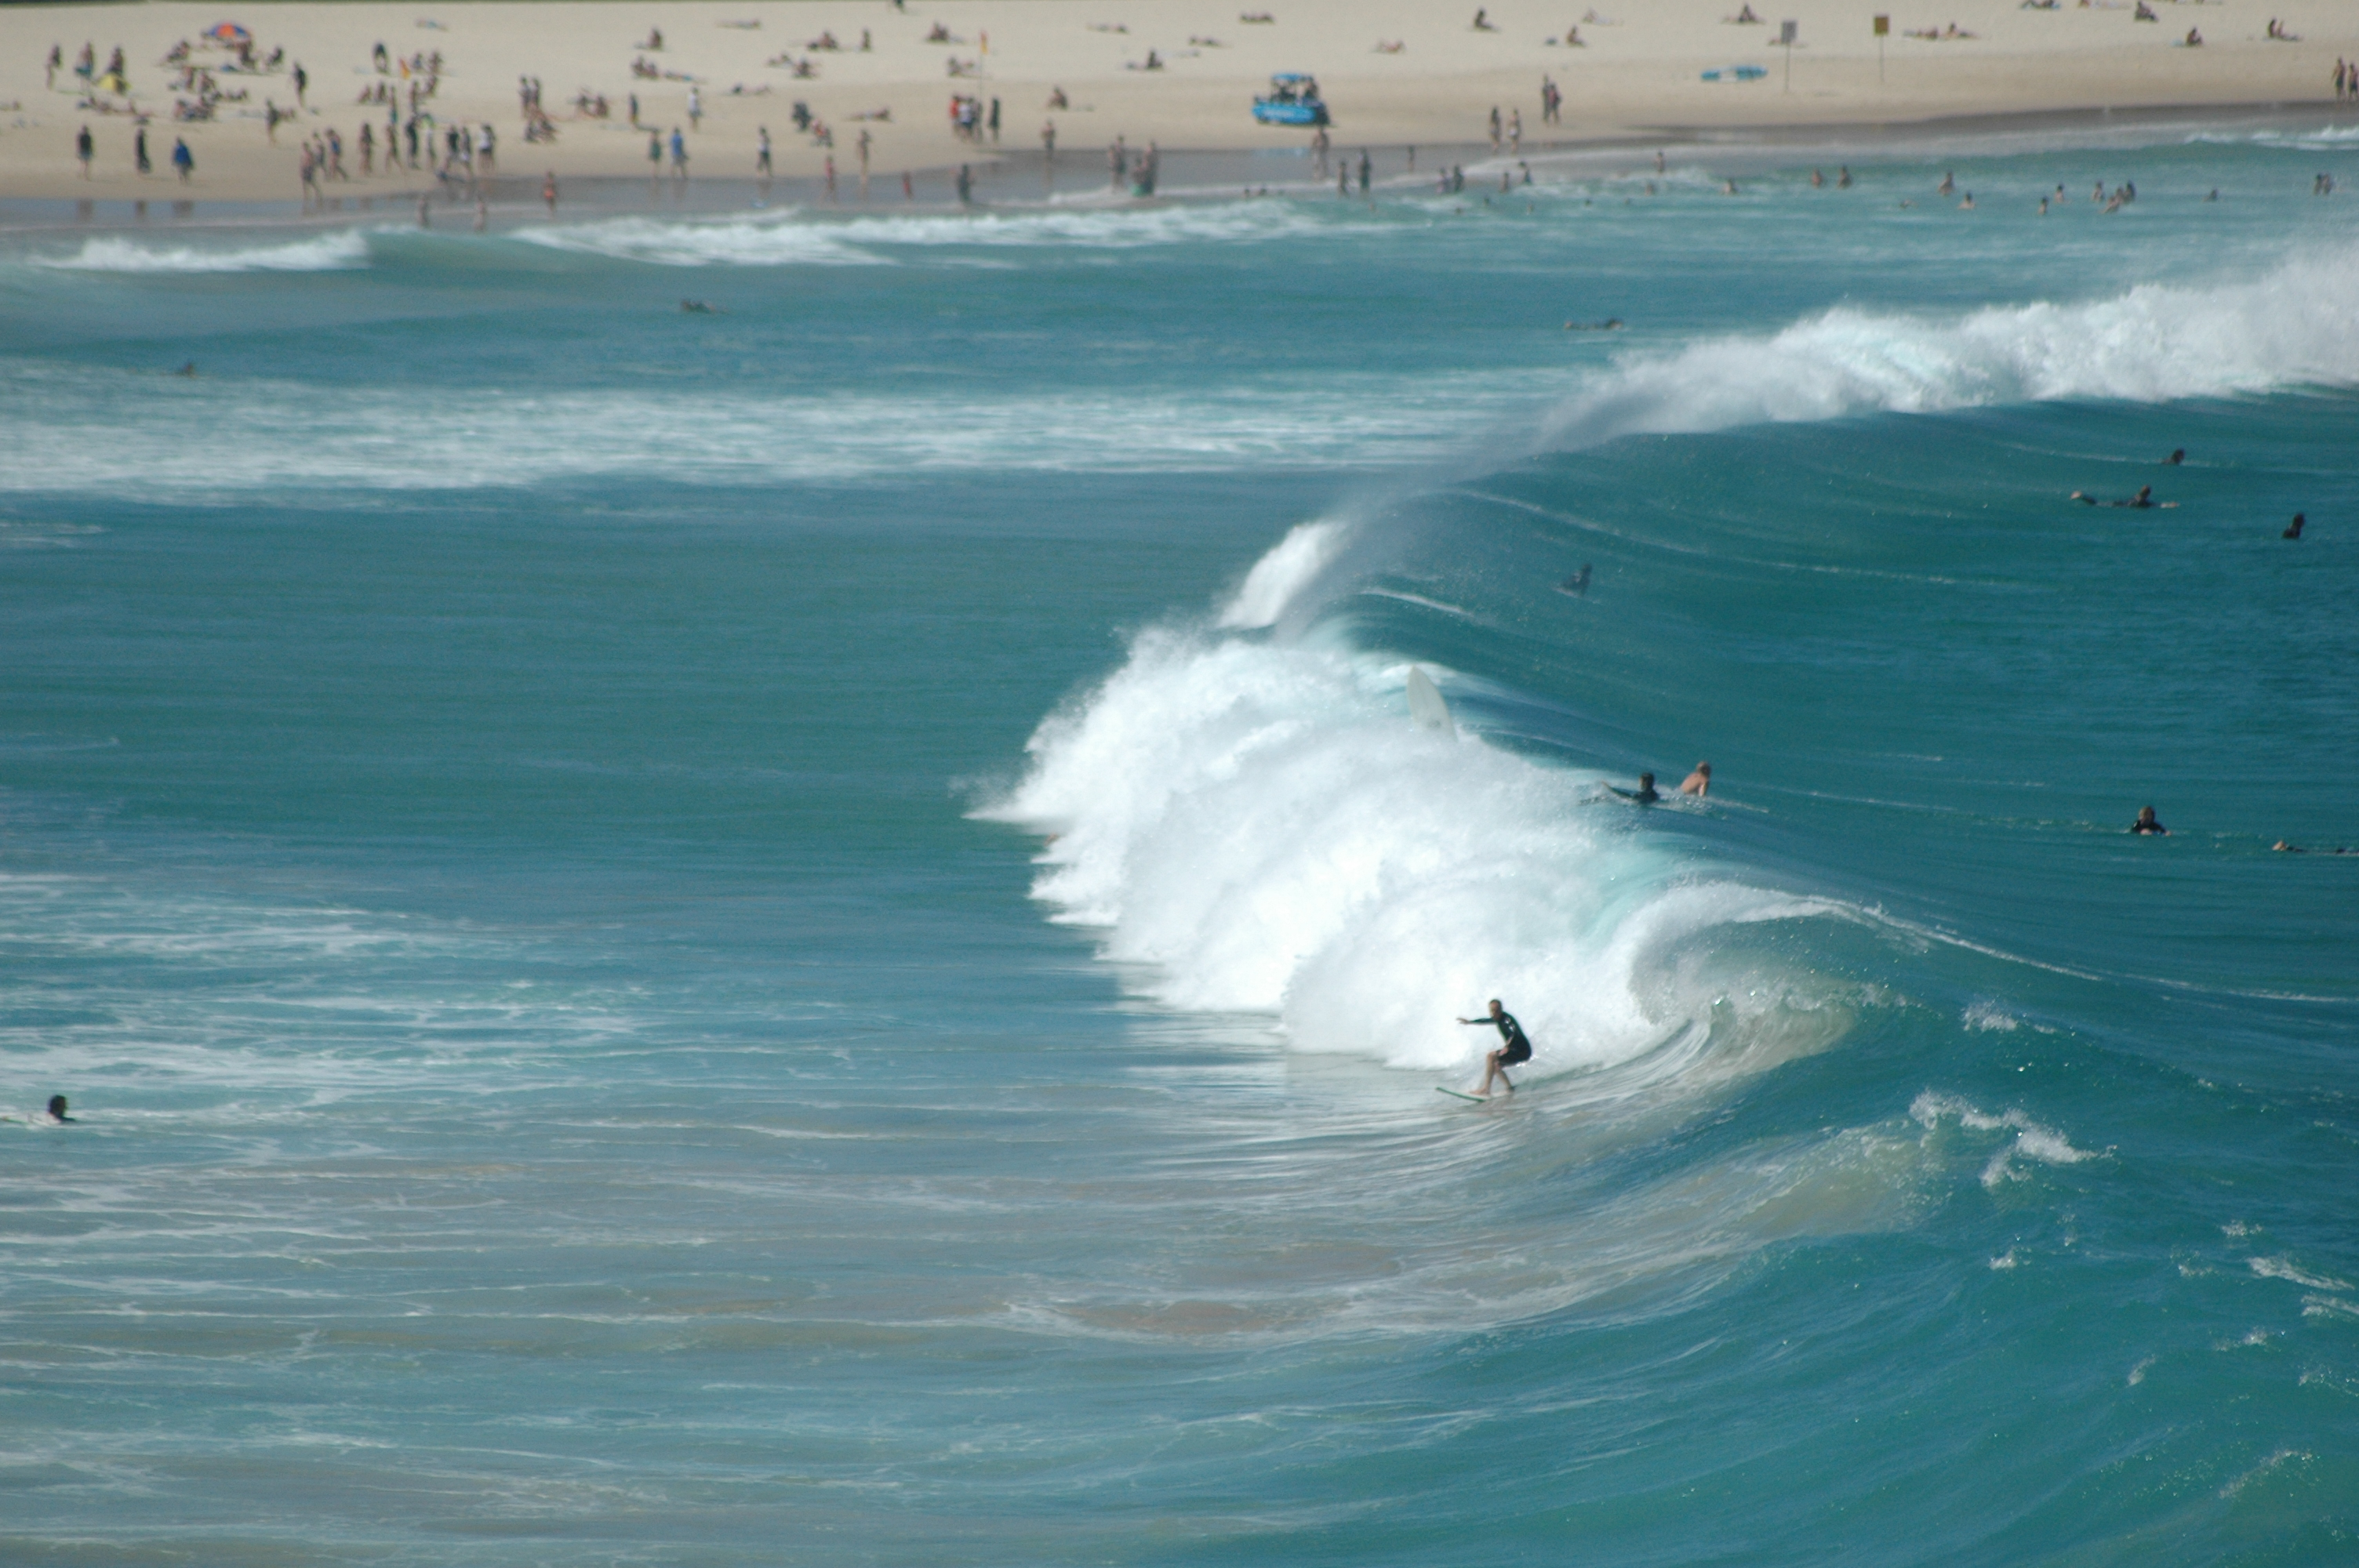 The Sports Archives Blog - The Sports Archives - Top Ten List Of World's Best Surf Spots!